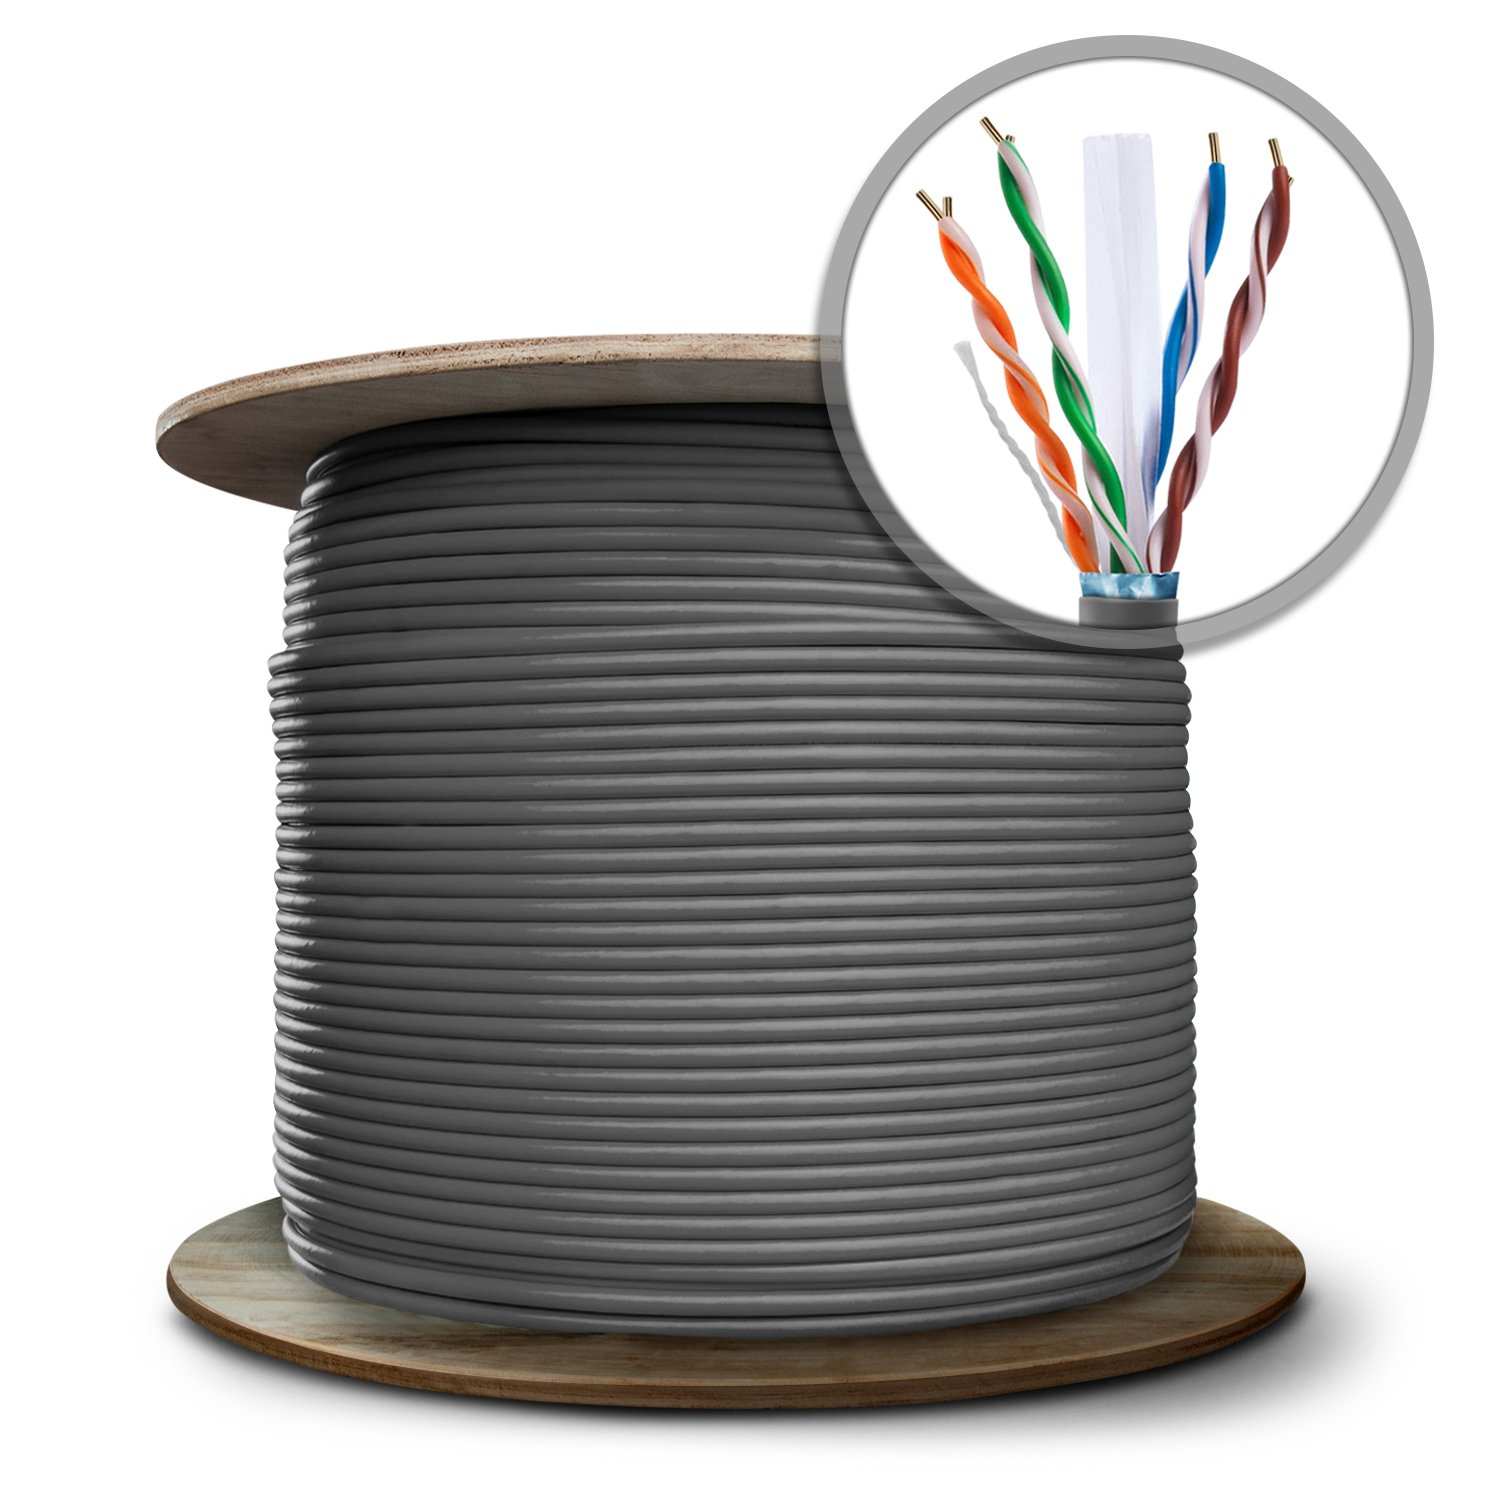 GearIT 1000 Feet Bulk Cat6 STP Ethernet Cable - Solid Twisted Pair - Cat 6 Shielded 550Mhz 24AWG Full Copper Wire Spool - In-Wall Rated (CM), Gray